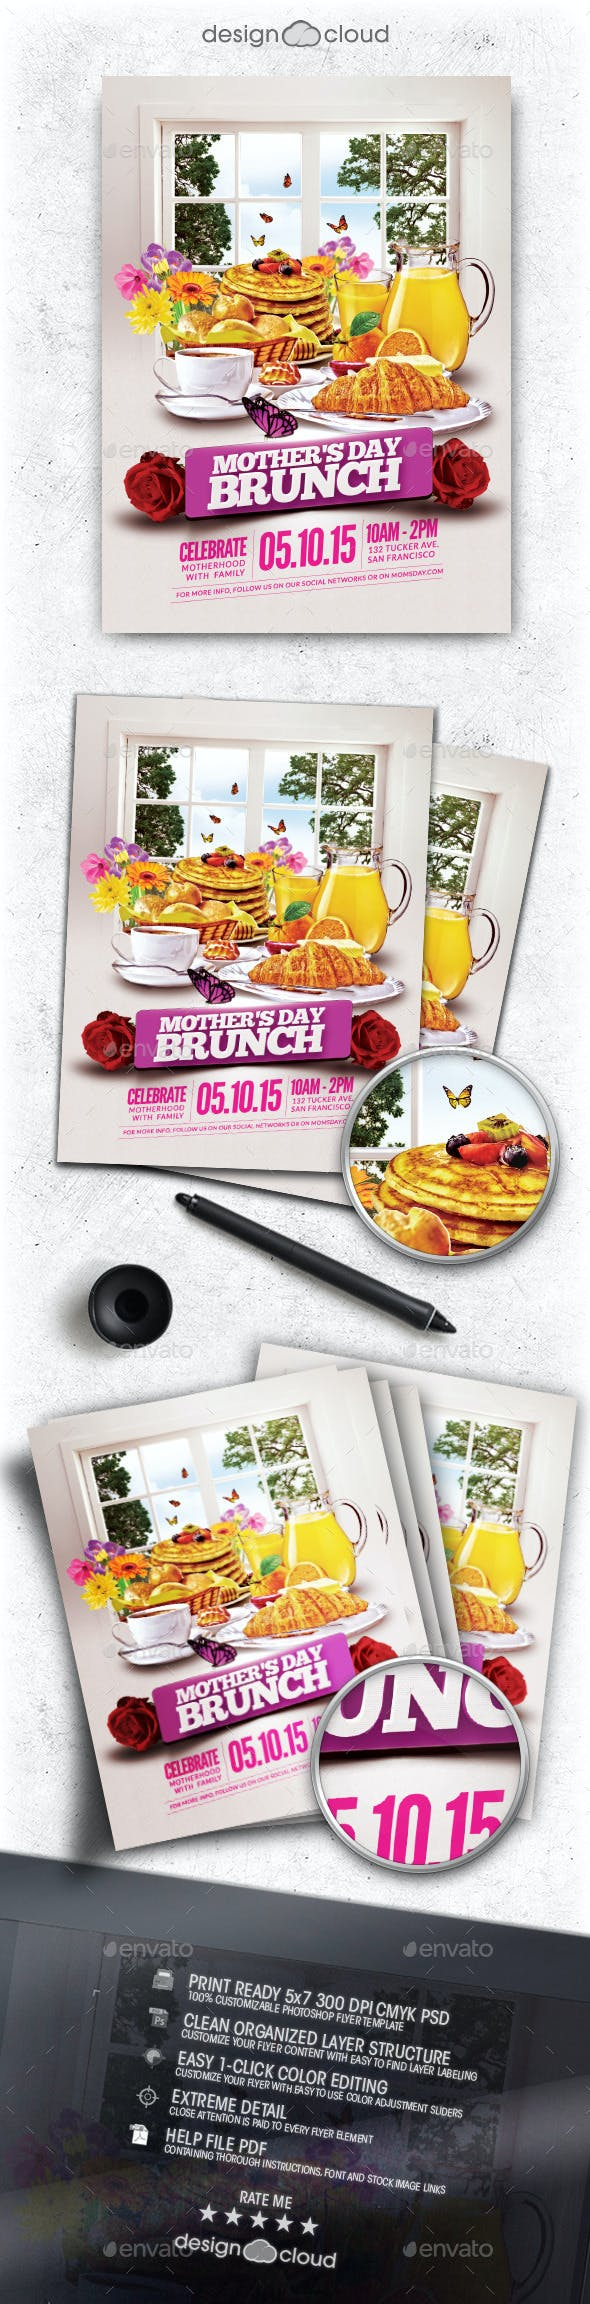 mother s day brunch flyer template by design cloud graphicriver